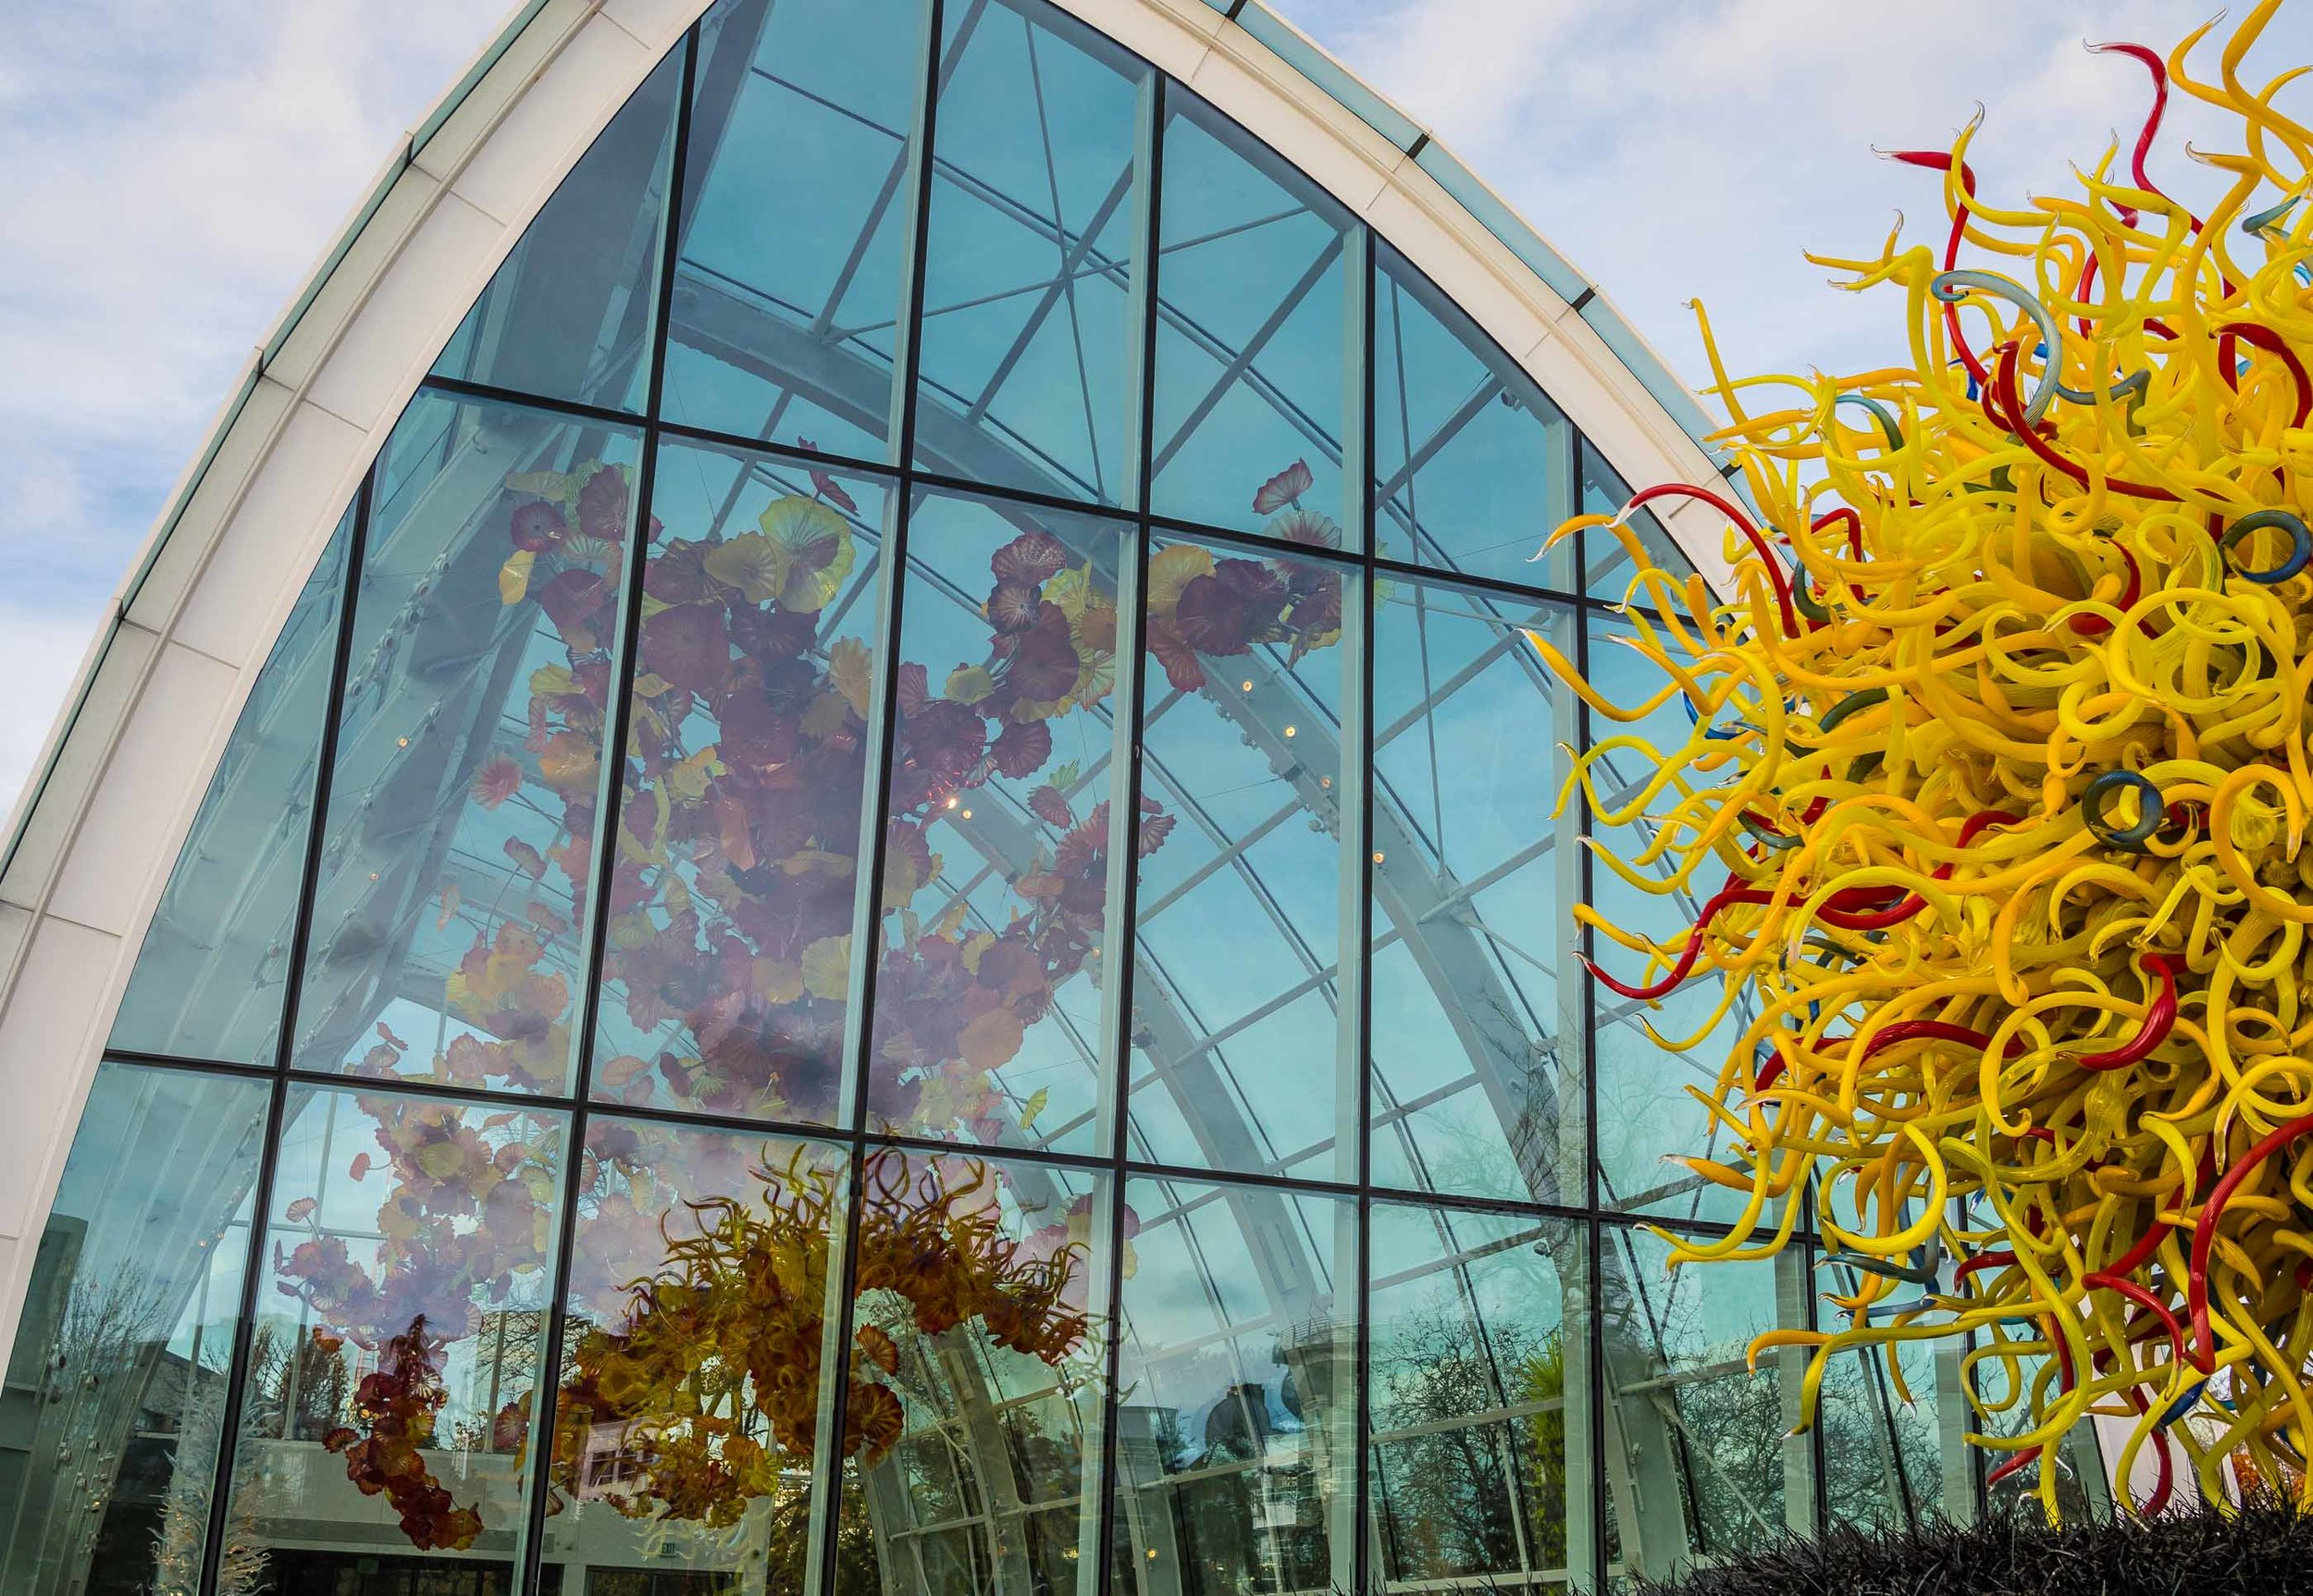 MYBELONGING-SEATTLE-CITY-GUIDE-UBER-X-TRAVEL-PHOTOGRAPHY-CHIHULY-GLASS-GARDEN-MUSEUM-8.jpg